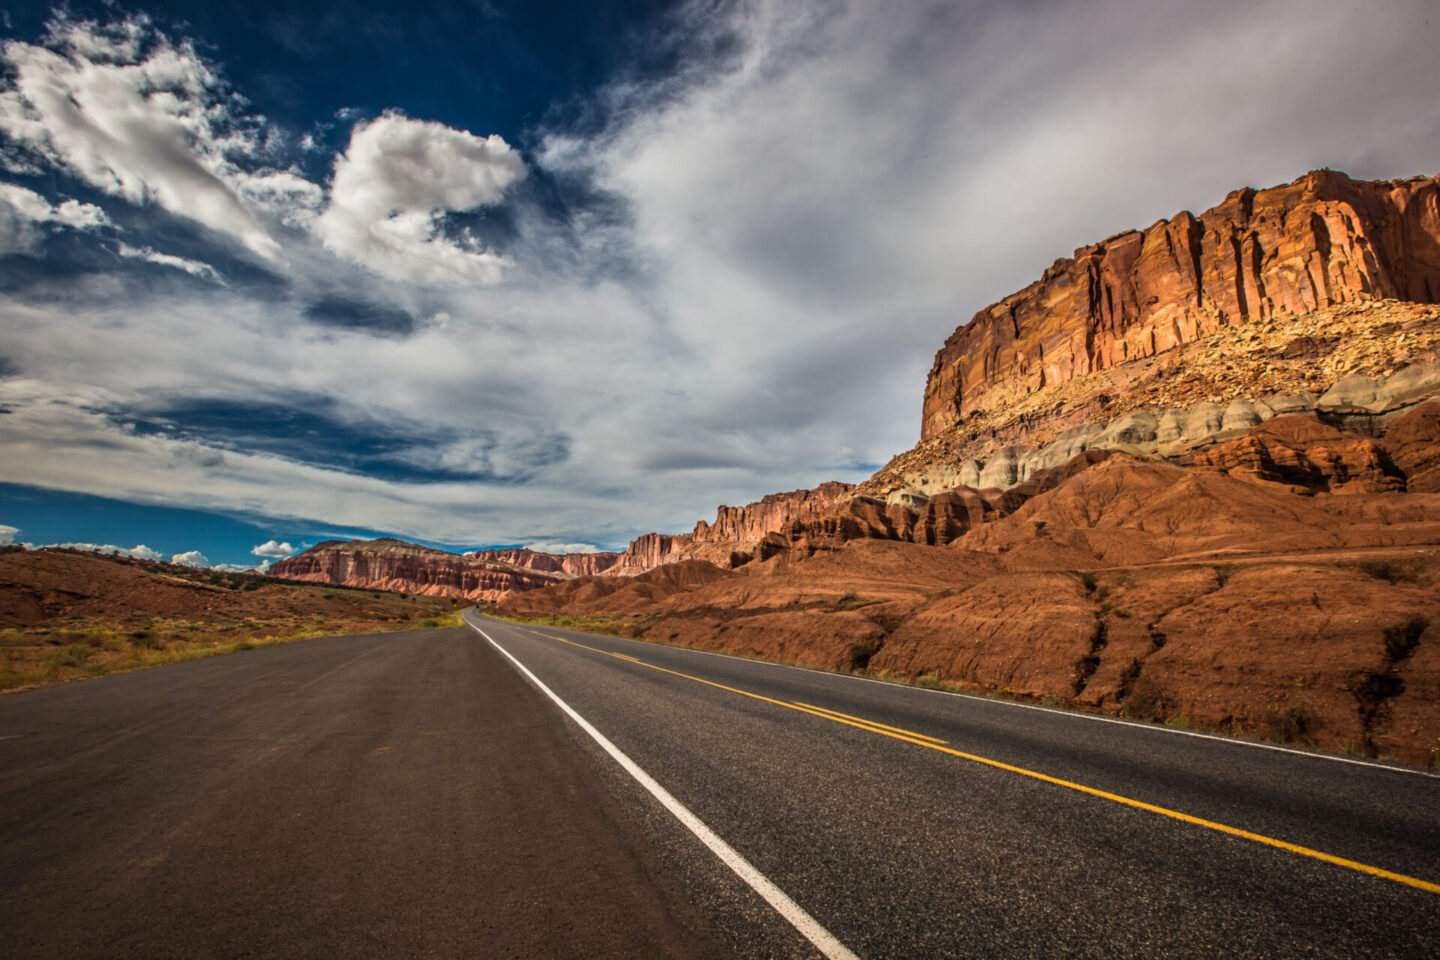 road trip spring break ideas for college students